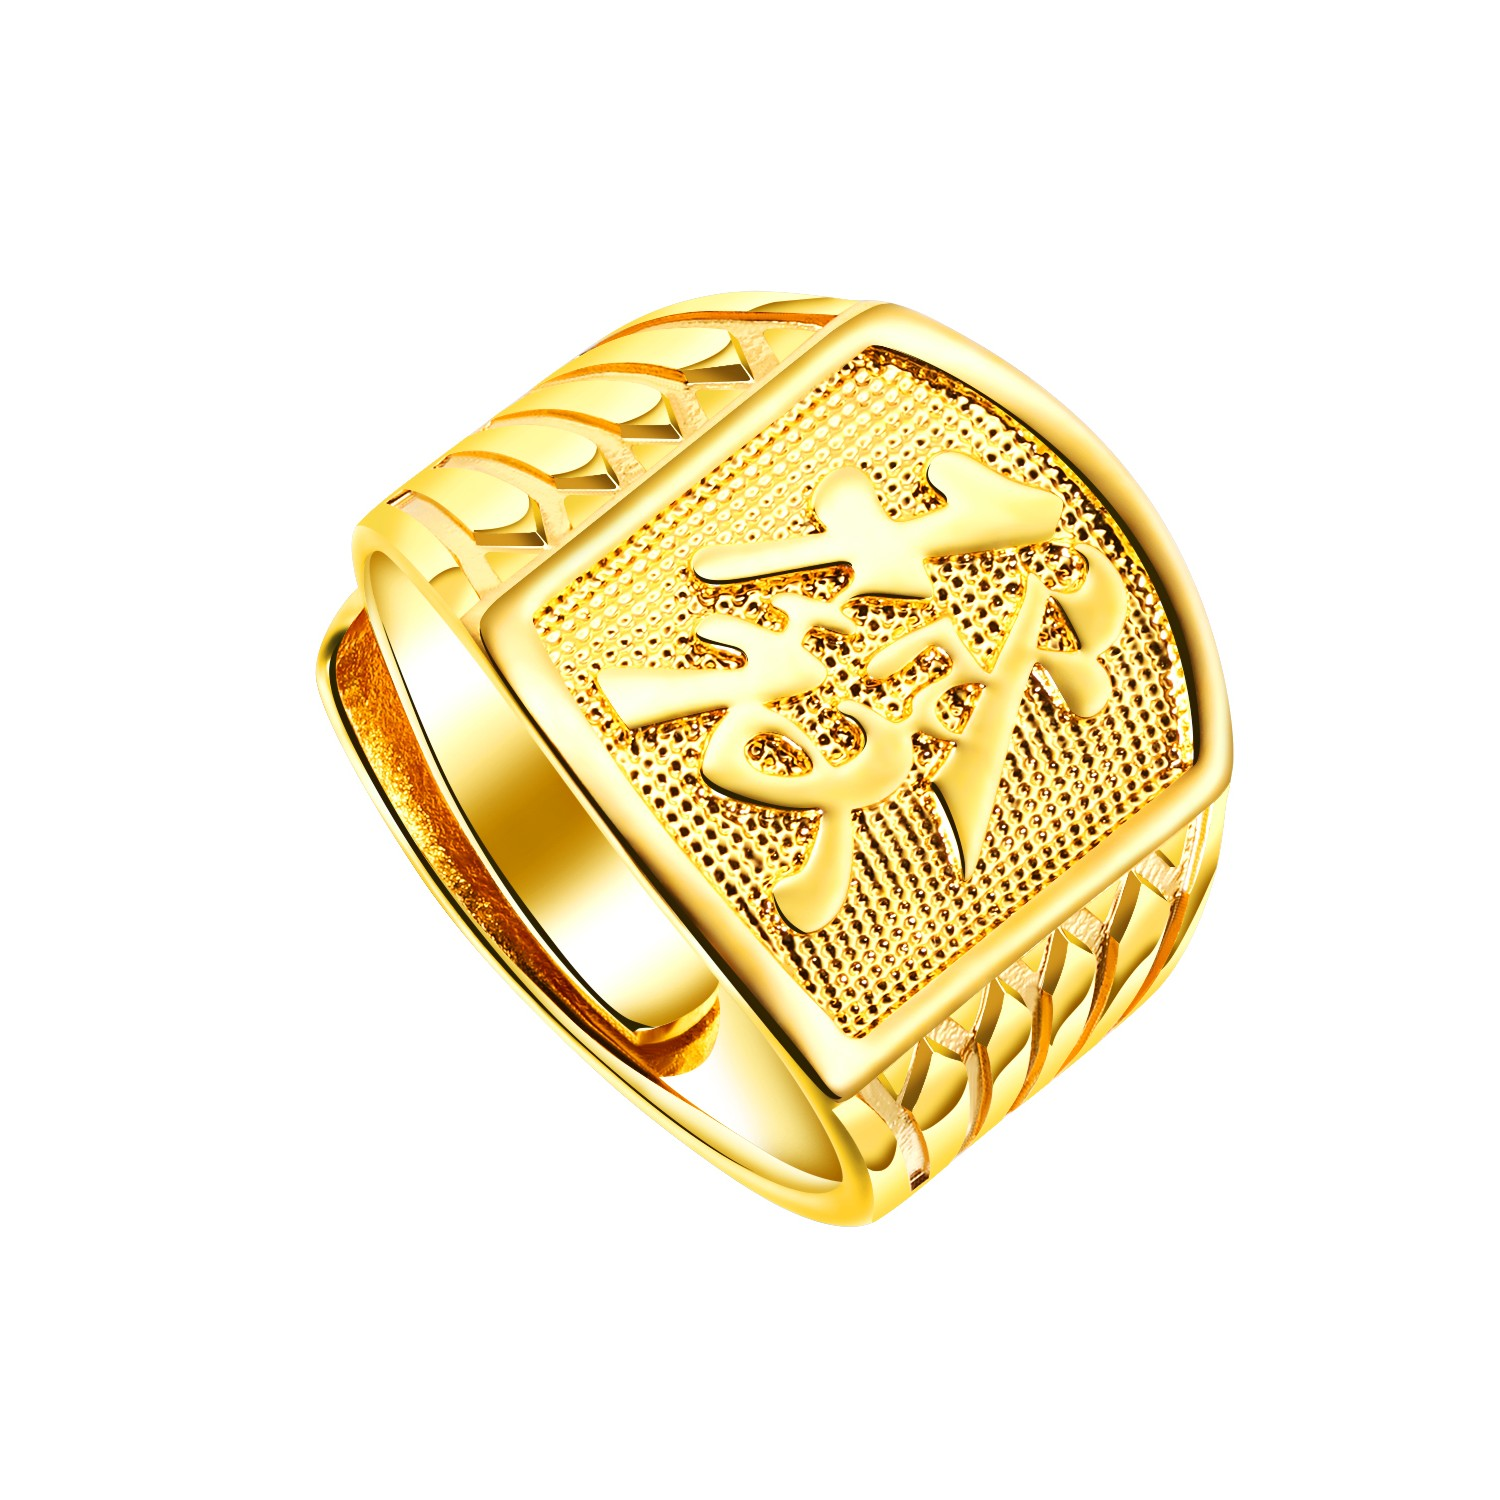 images rings png imgs earnings free ring jewellery jewelry download gold image